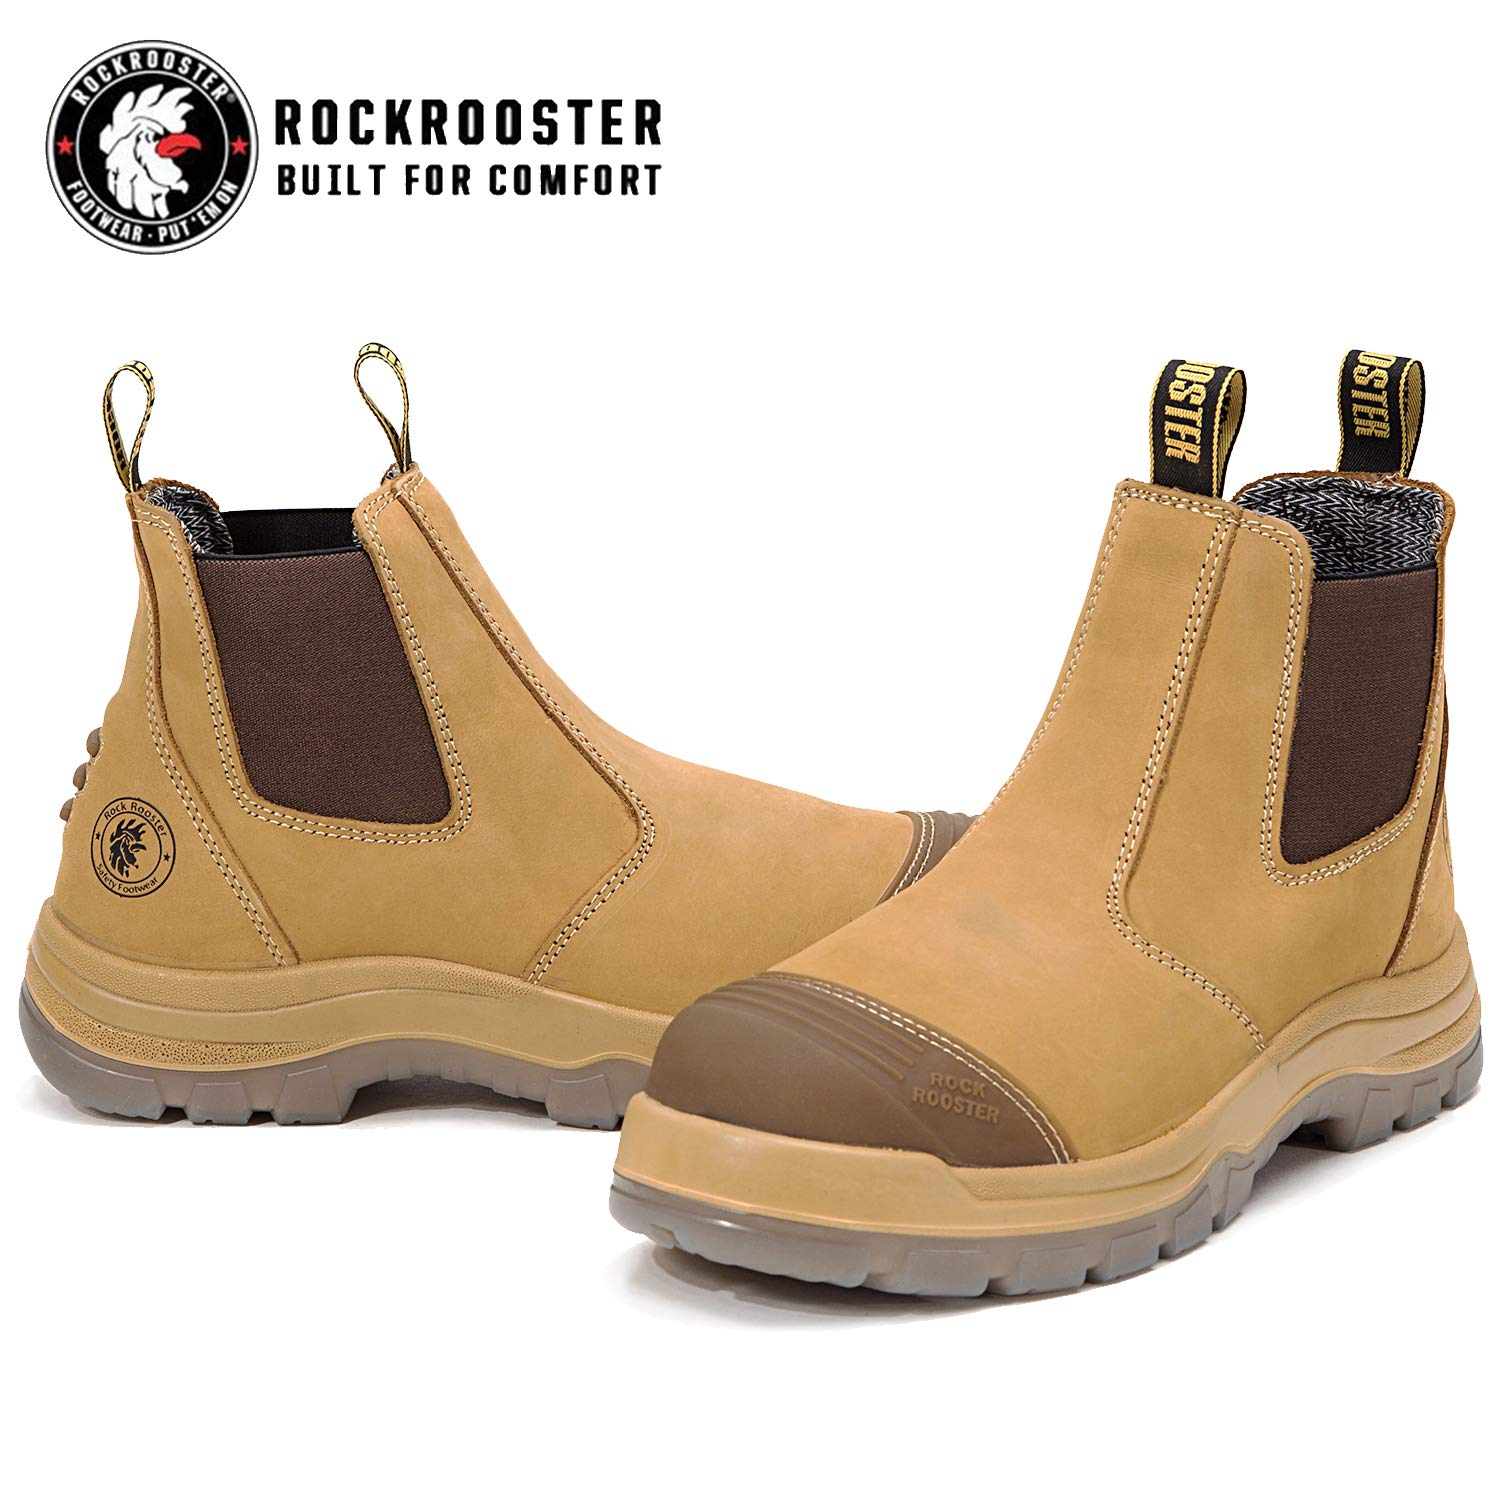 Full Waxy Tumbled Leather Shoes AK227, AK222 ROCKROOSTER Work Boots for Men Coolmax Non-Slip Safety Boot Antistatic Poron XRD EEE-Wide Steel Toe